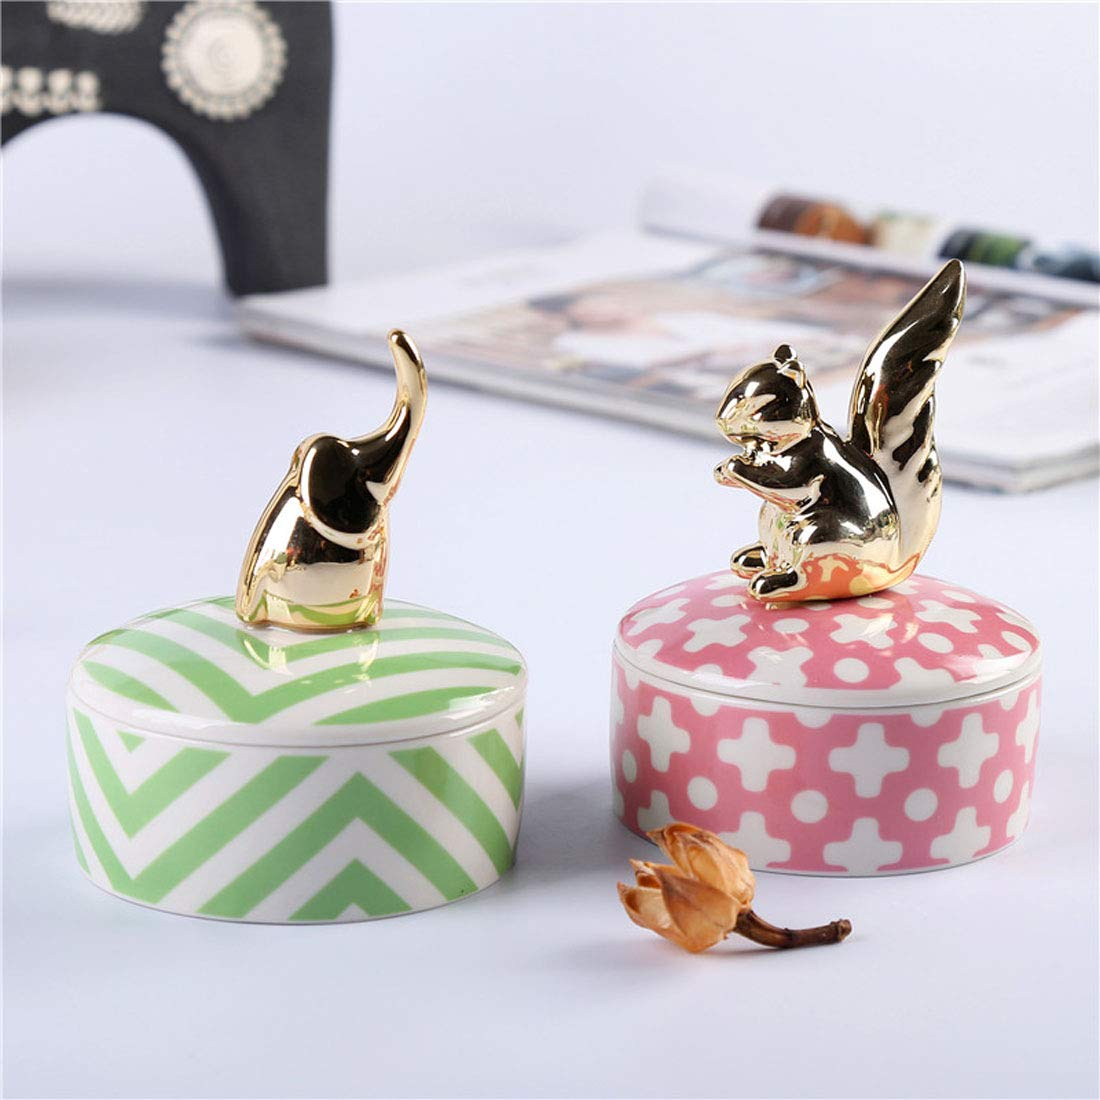 Cool Lemon Ceramic Golden Squirrel Elephant Ring Jewelry Box with Lid Ornament Decorative Box Engagement Wedding Ring Holder,Gift for Girls /& Women,